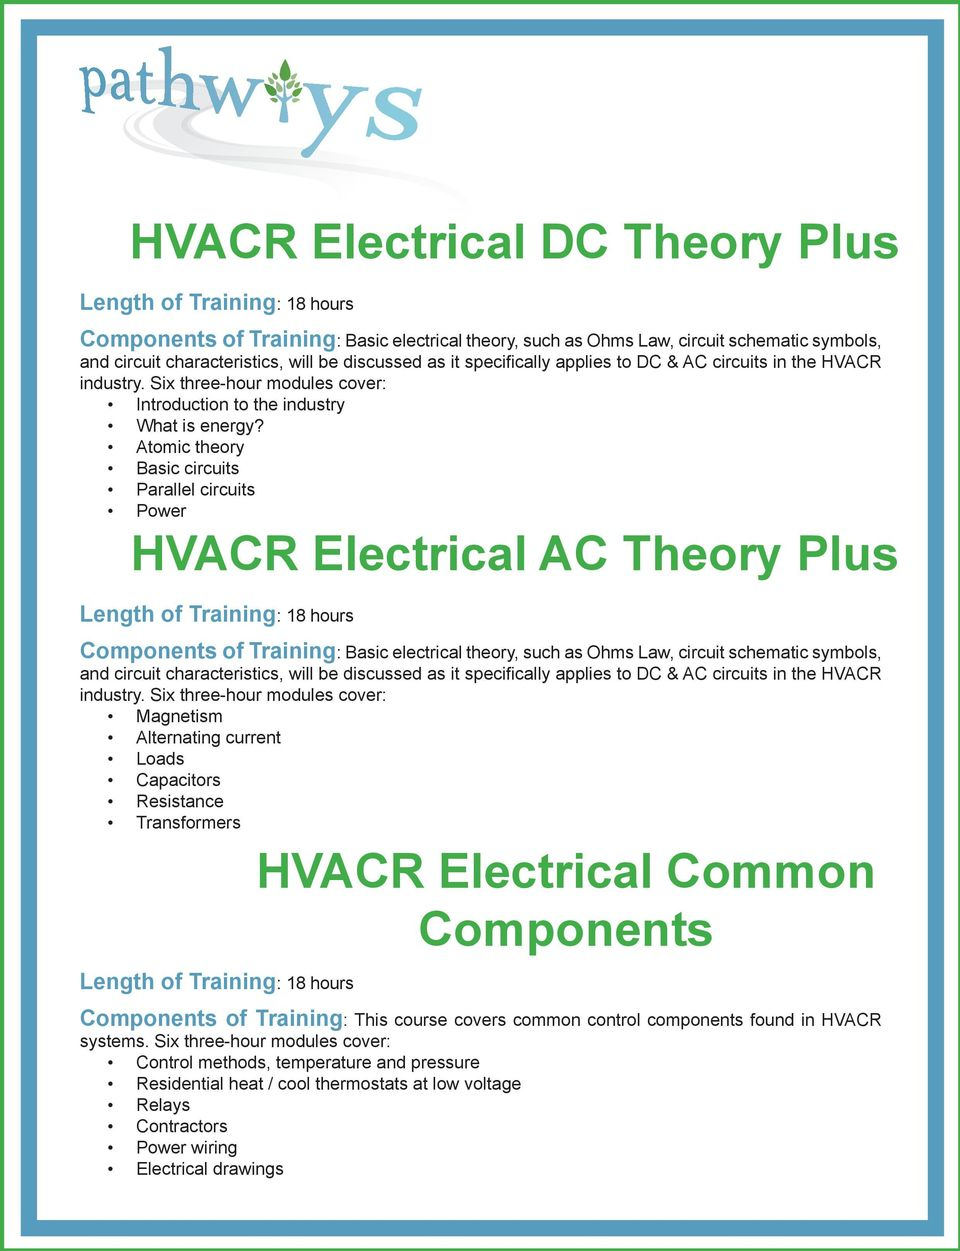 Atomic theory Basic circuits Parallel circuits Power HVACR Electrical AC Theory Plus Components of Training: Basic electrical theory, such as Ohms Law, circuit schematic symbols, and circuit